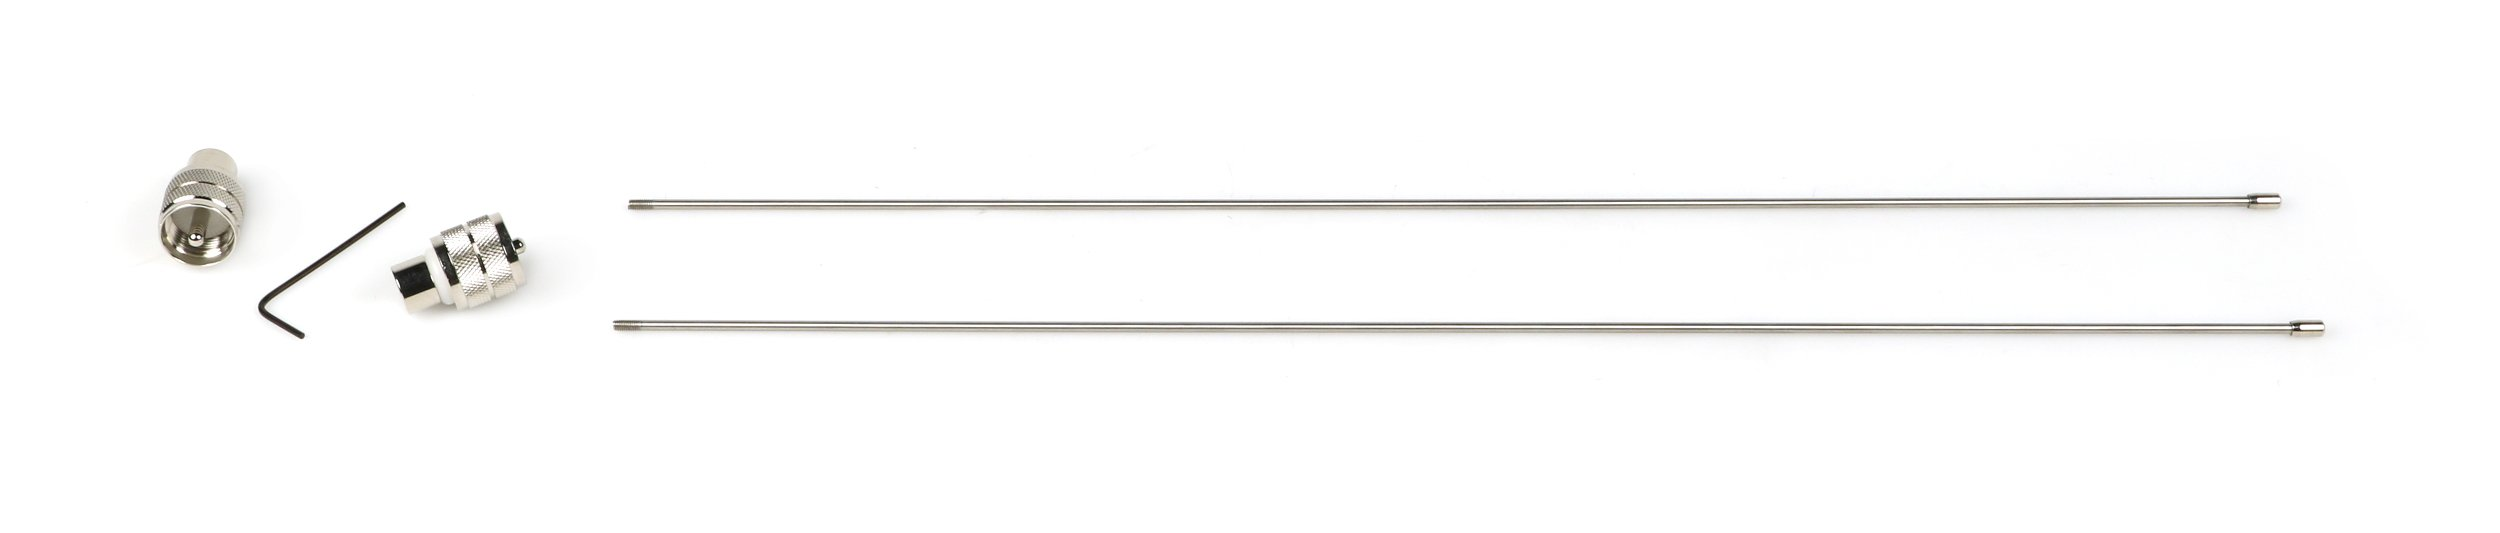 Replacement Antenna for ATW-R11, ATW-R12, ATW1128 (Pair)